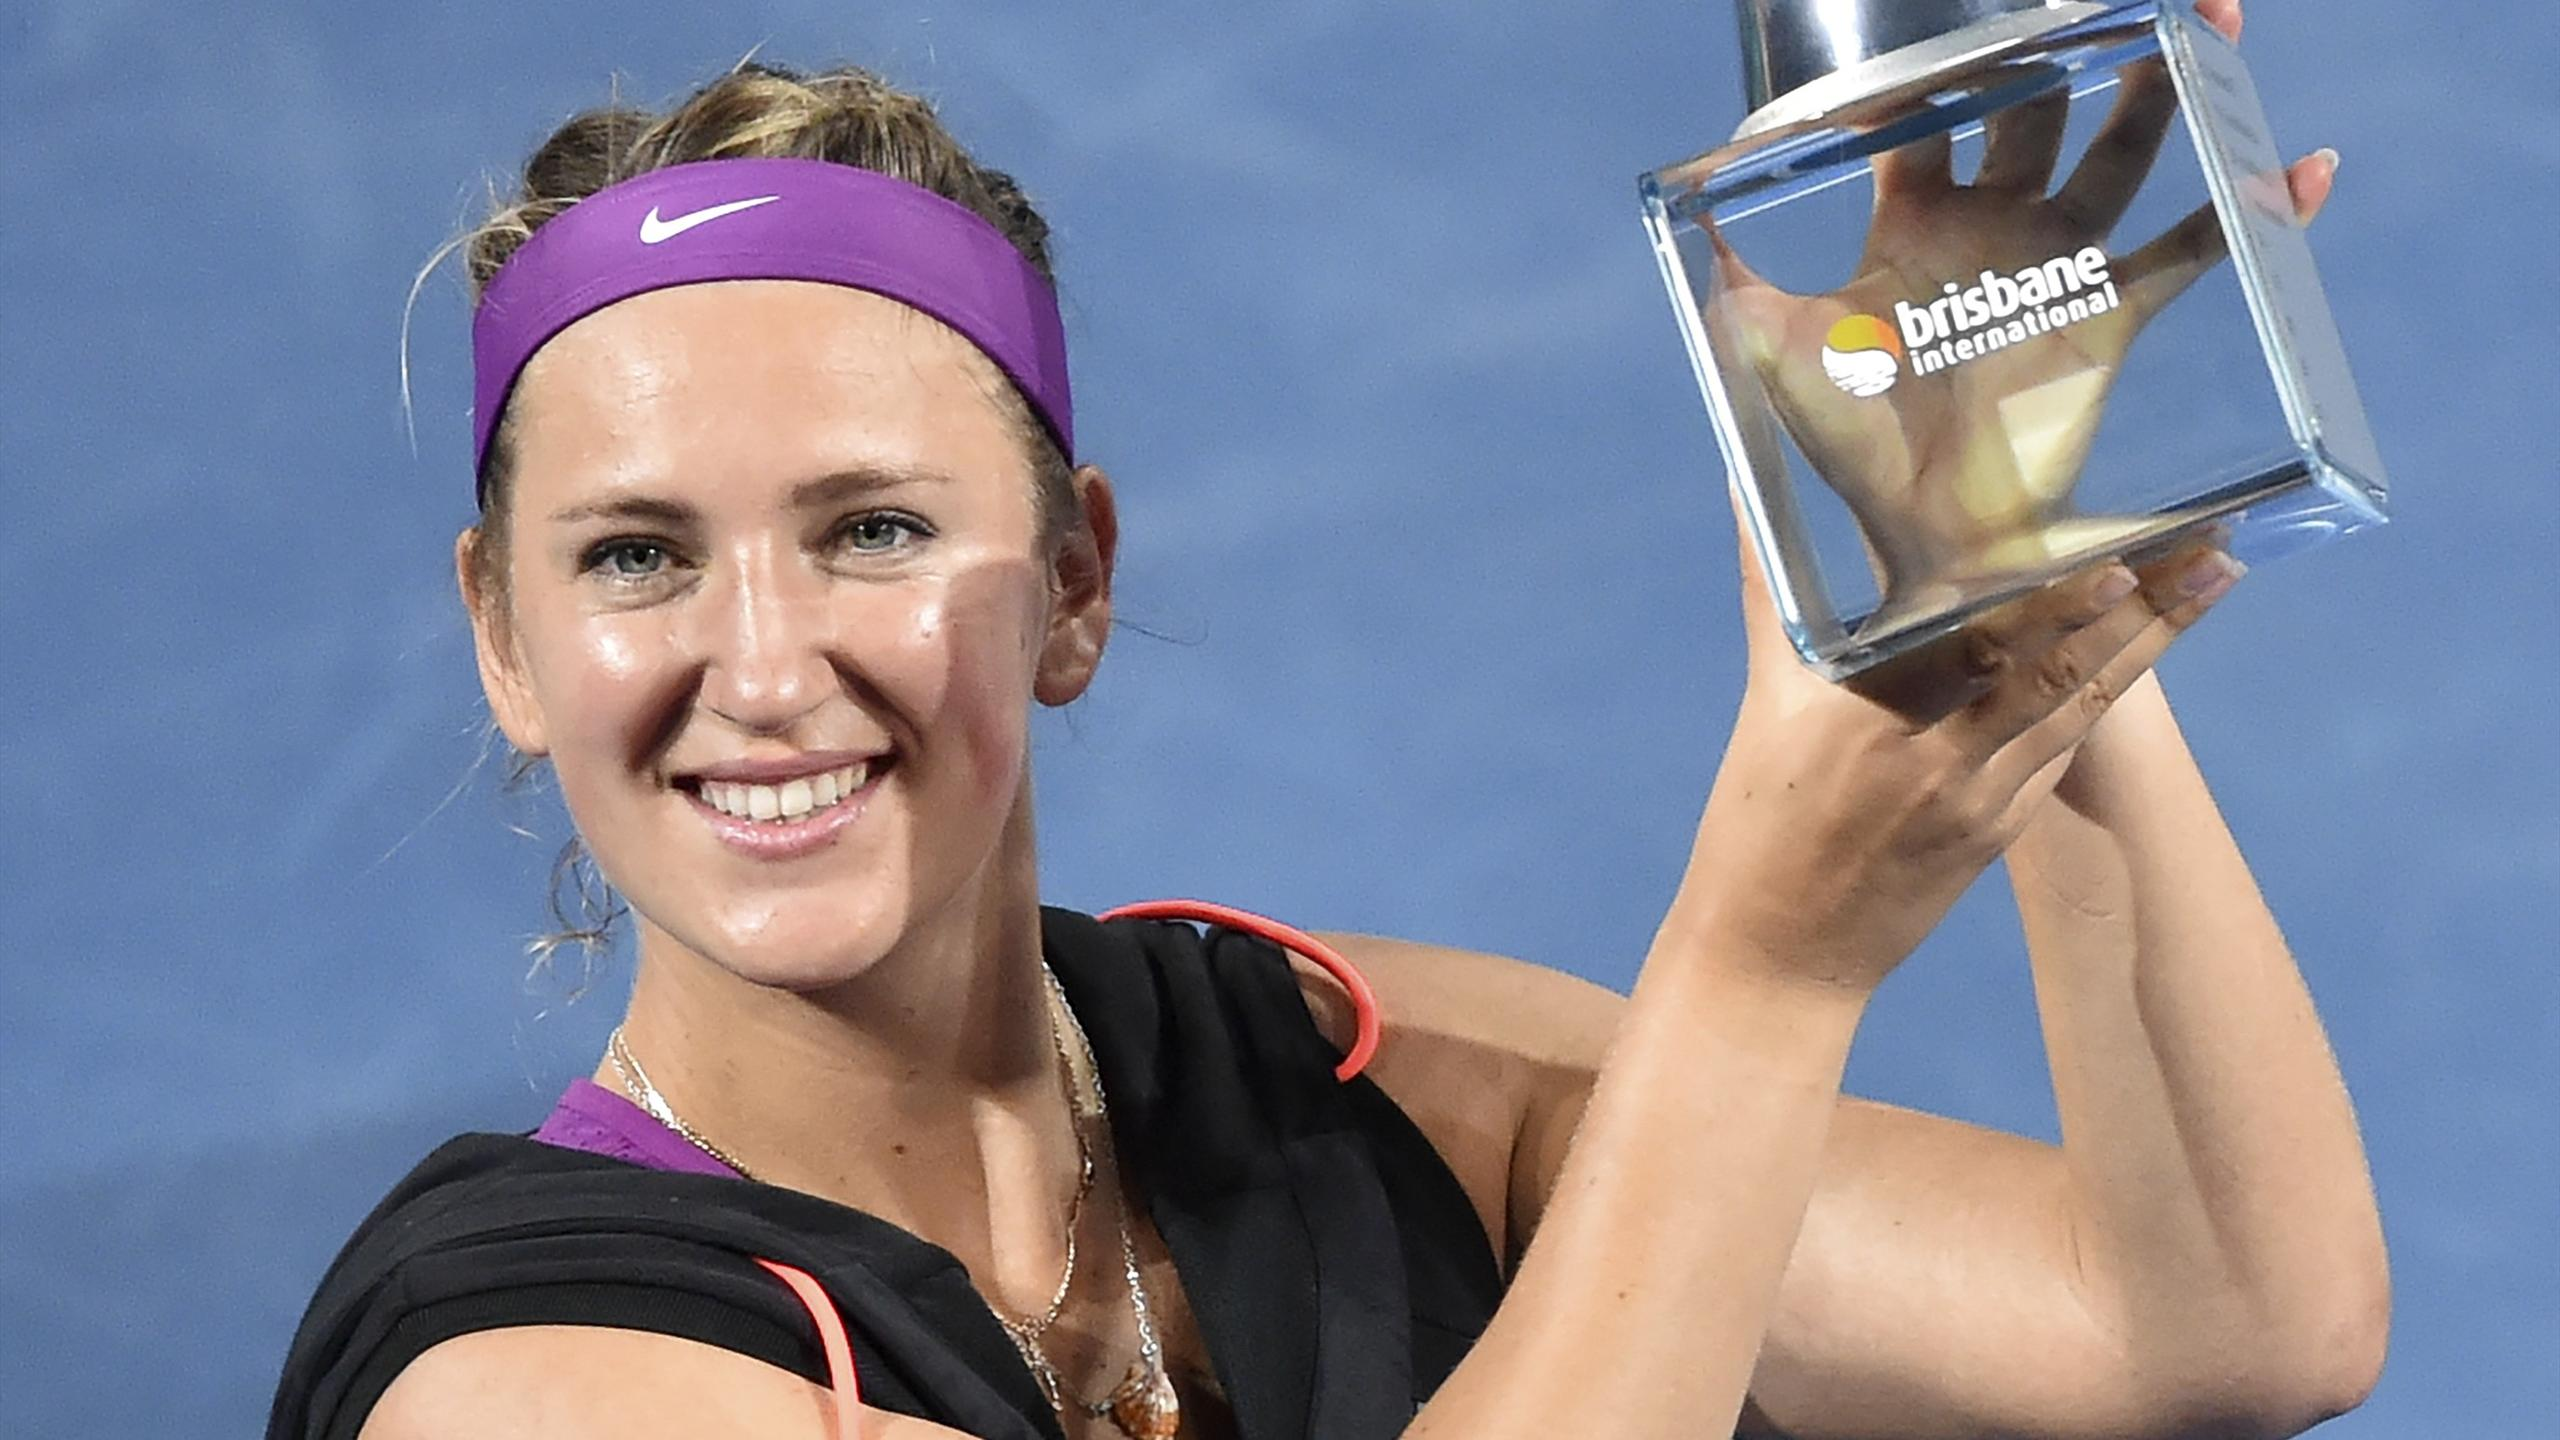 Victoria Azarenka of Belarus lifts her winning trophy after defeating Angelique Kerber of Germany in the women's final of the Brisbane International tennis tournament